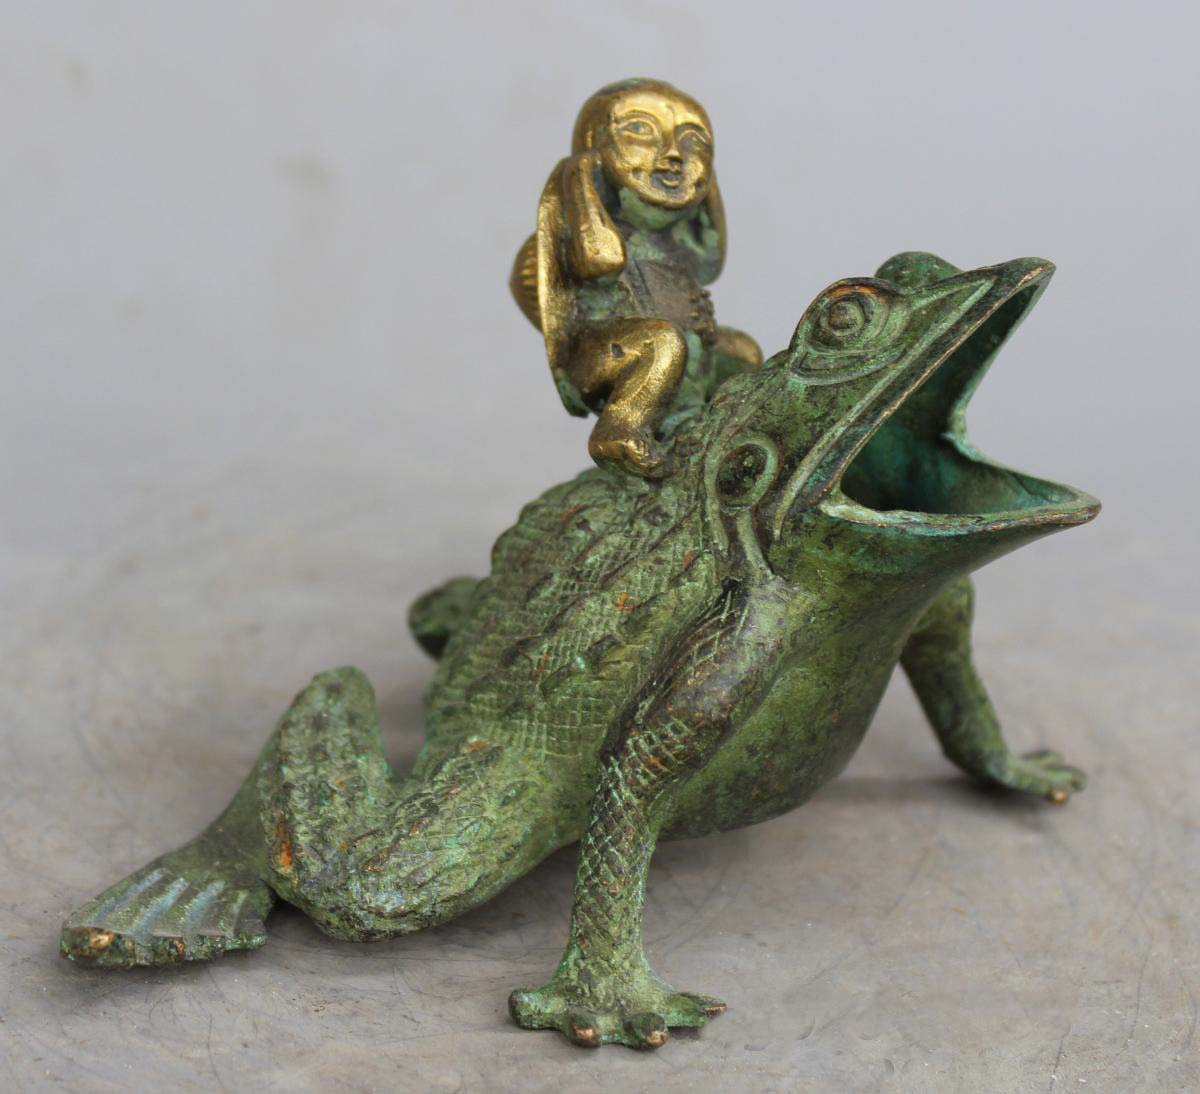 4 Rare Decorated Old Handwork Carved Frog Bronze gilt Buddha Statue4 Rare Decorated Old Handwork Carved Frog Bronze gilt Buddha Statue